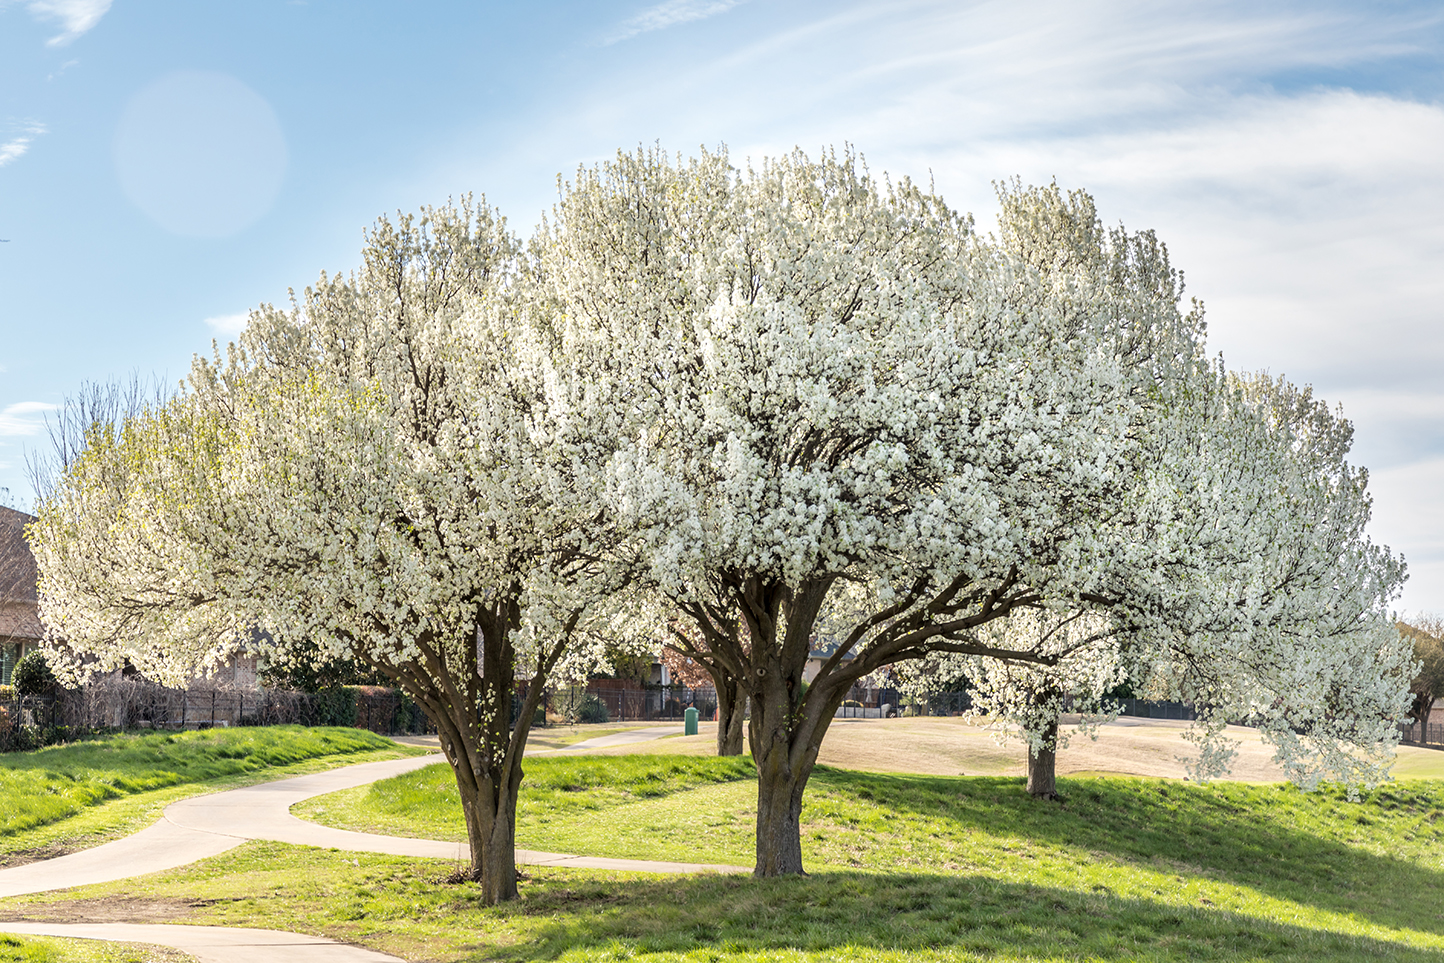 white flowering bradford pear tree on green grass with sidewalk